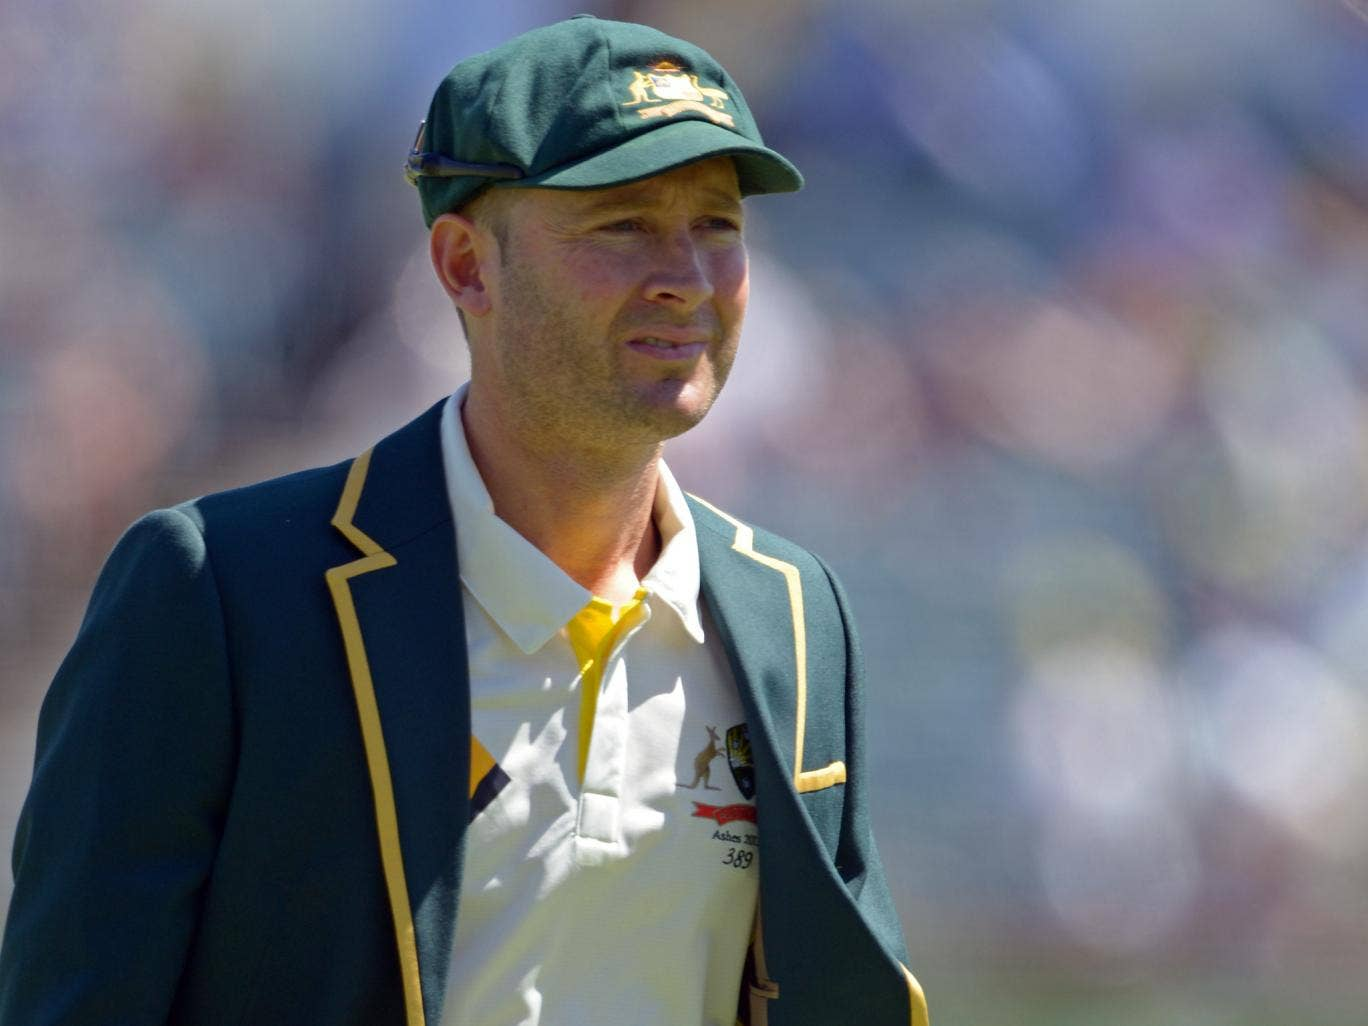 Australia captain Michael Clarke has been named the player and test cricketer of the year by the ICC